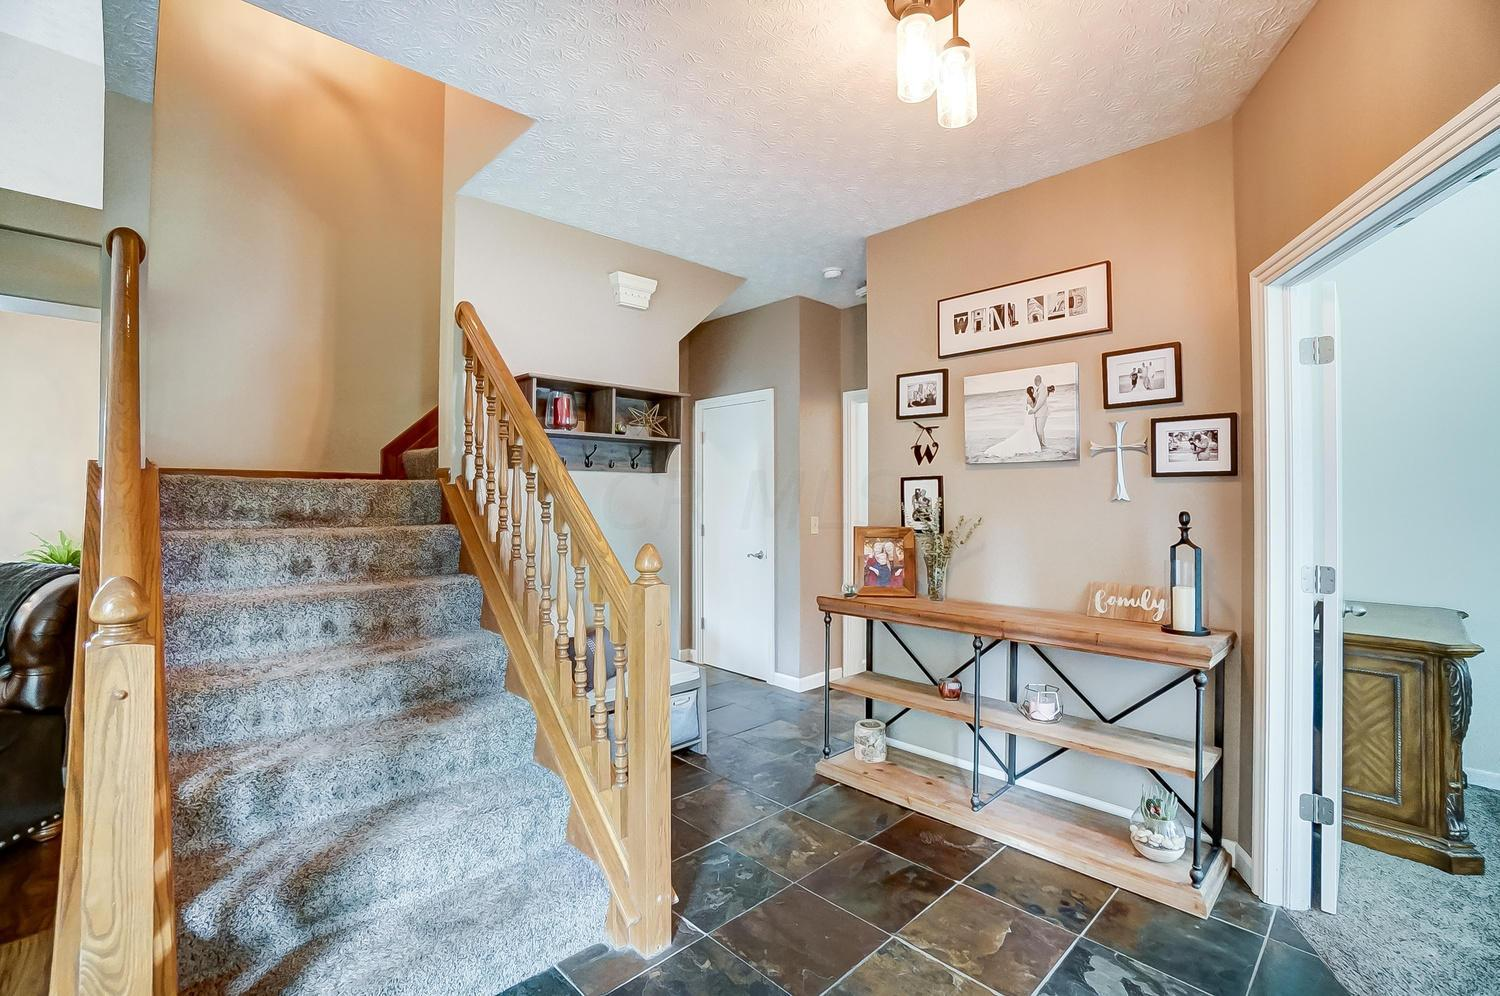 7399 Wynwright Court, Dublin, Ohio 43016, 4 Bedrooms Bedrooms, ,4 BathroomsBathrooms,Residential,For Sale,Wynwright,220020265